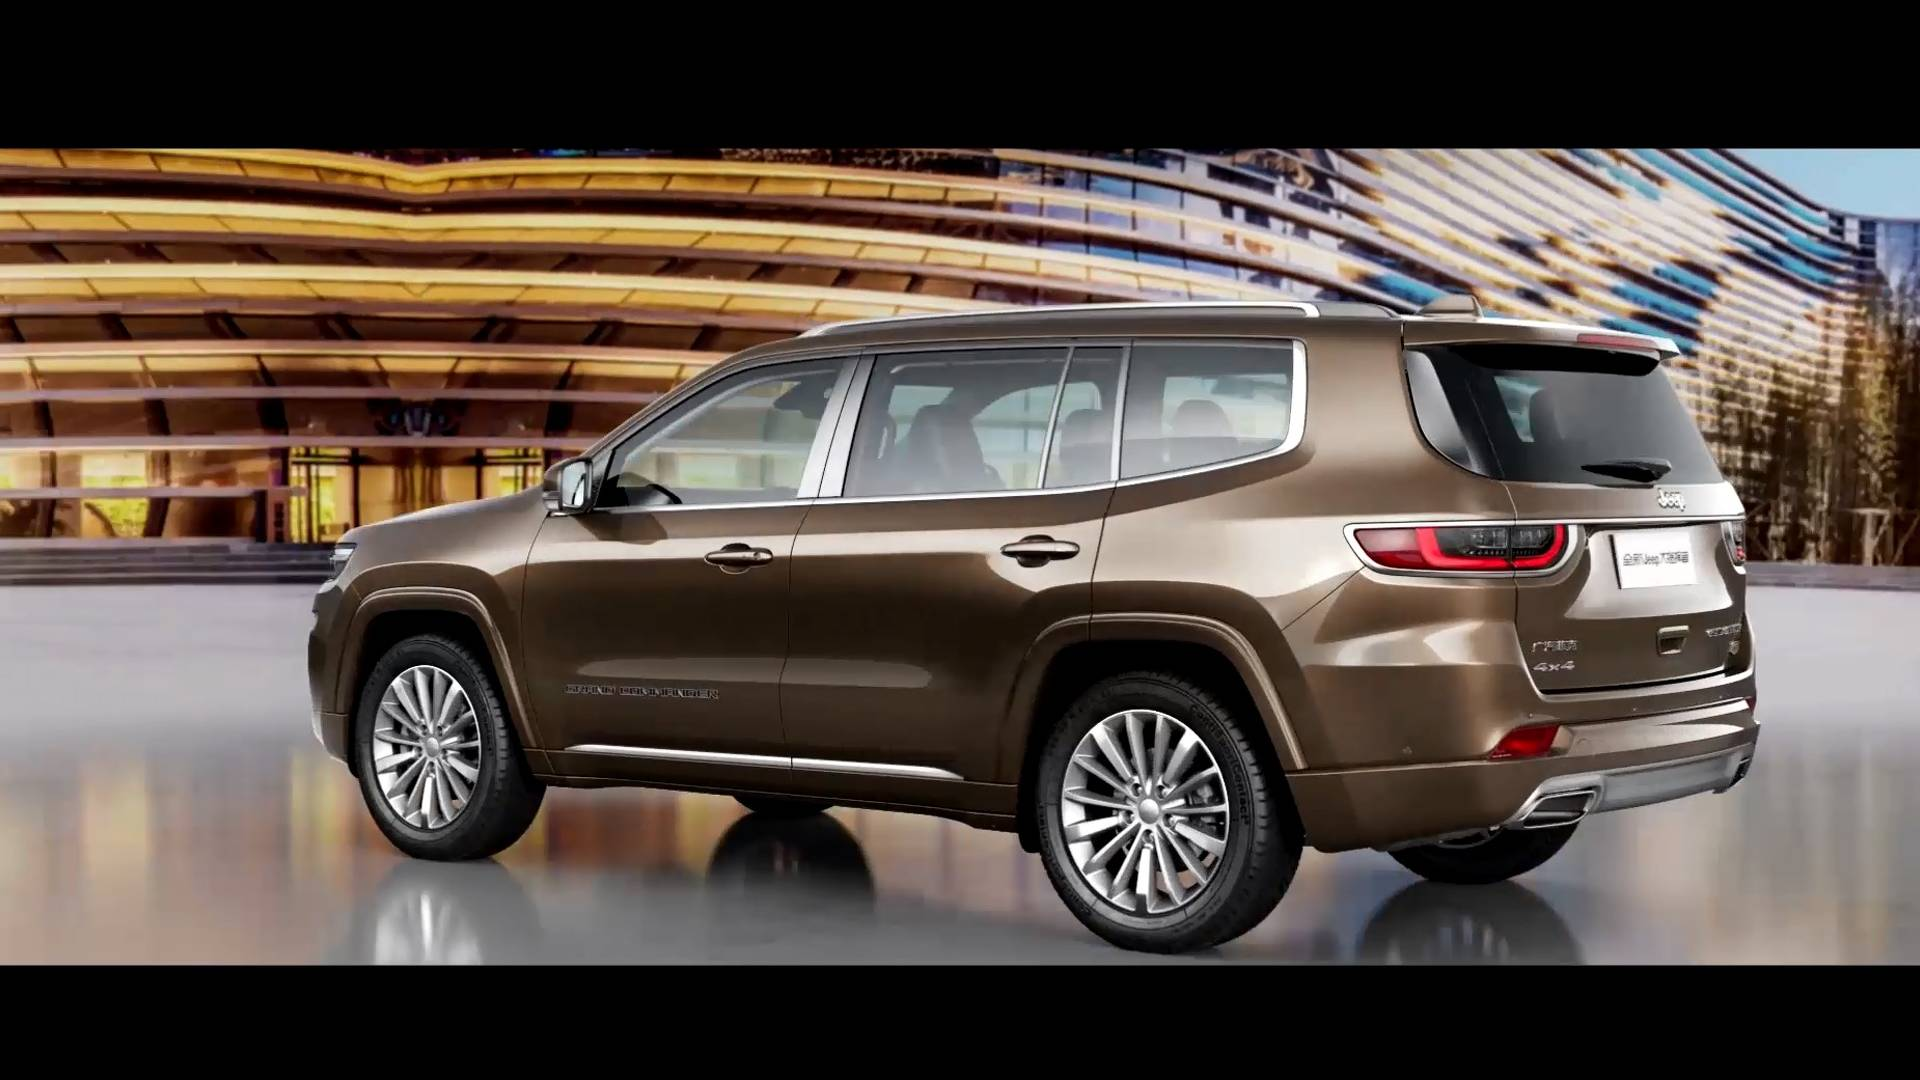 Jeep Grand Commander Coming To The U.S. As A Chrysler?